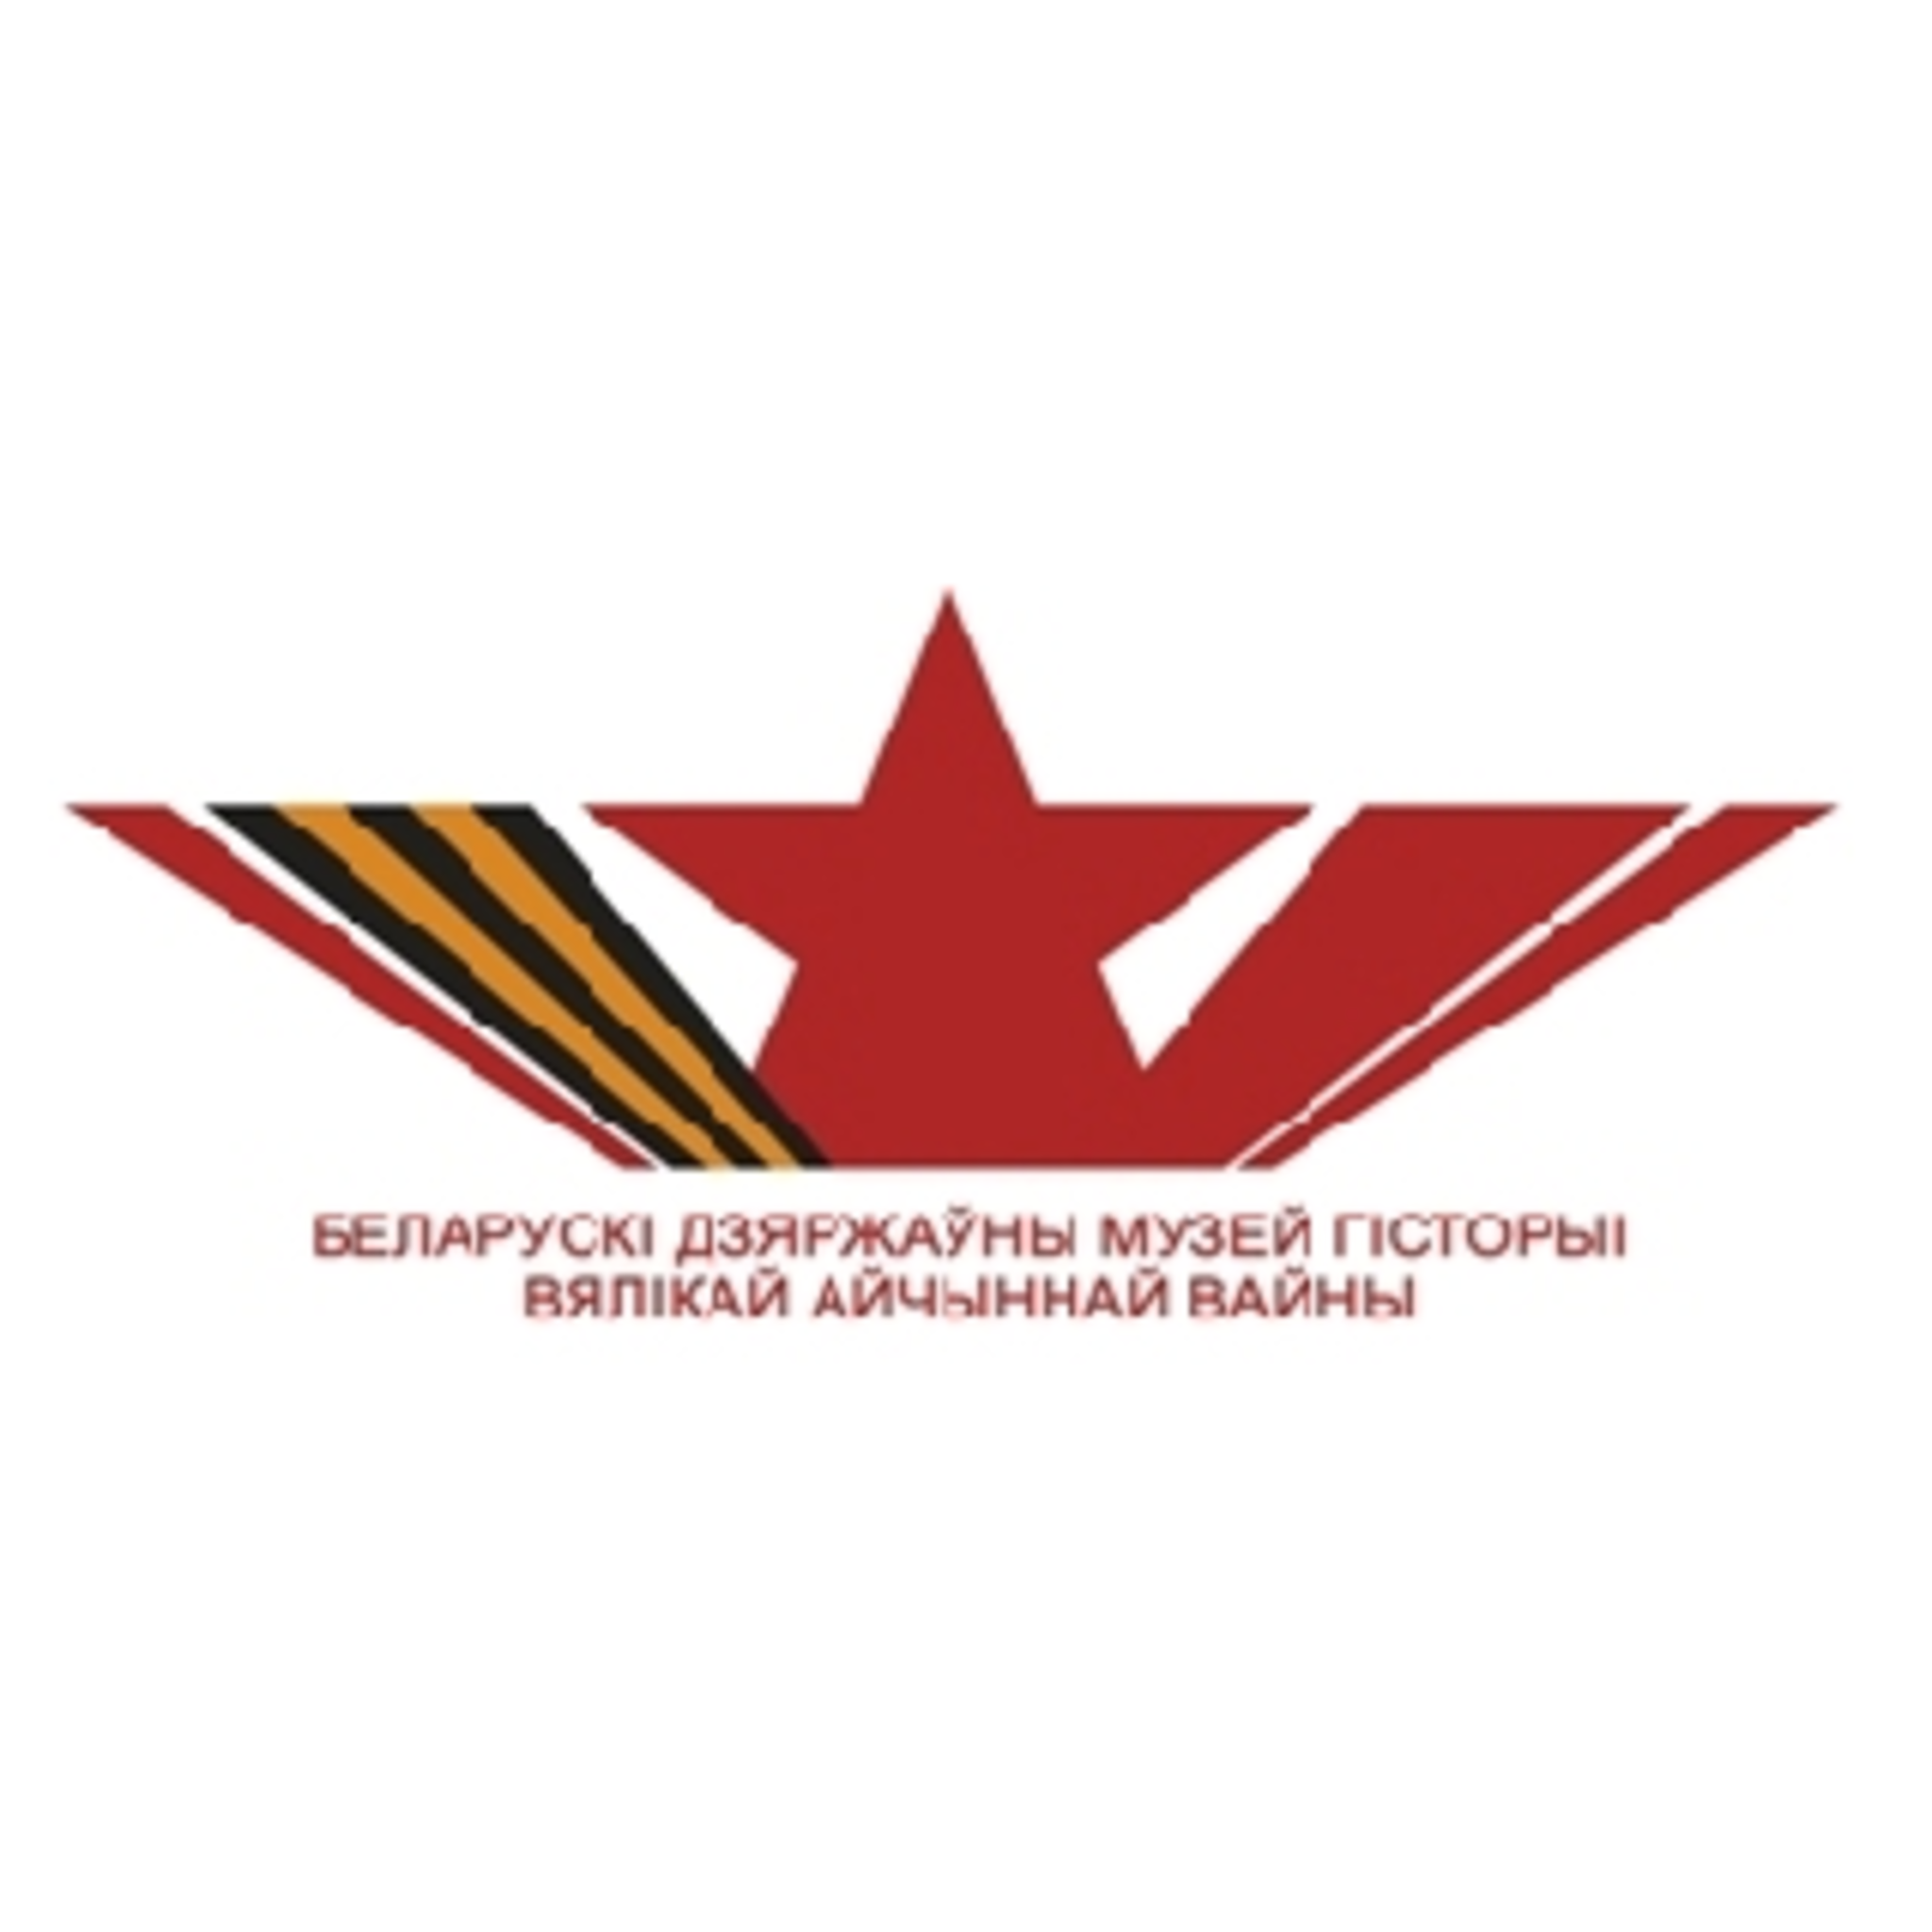 The Belarusian state Museum of history of Great Patriotic war